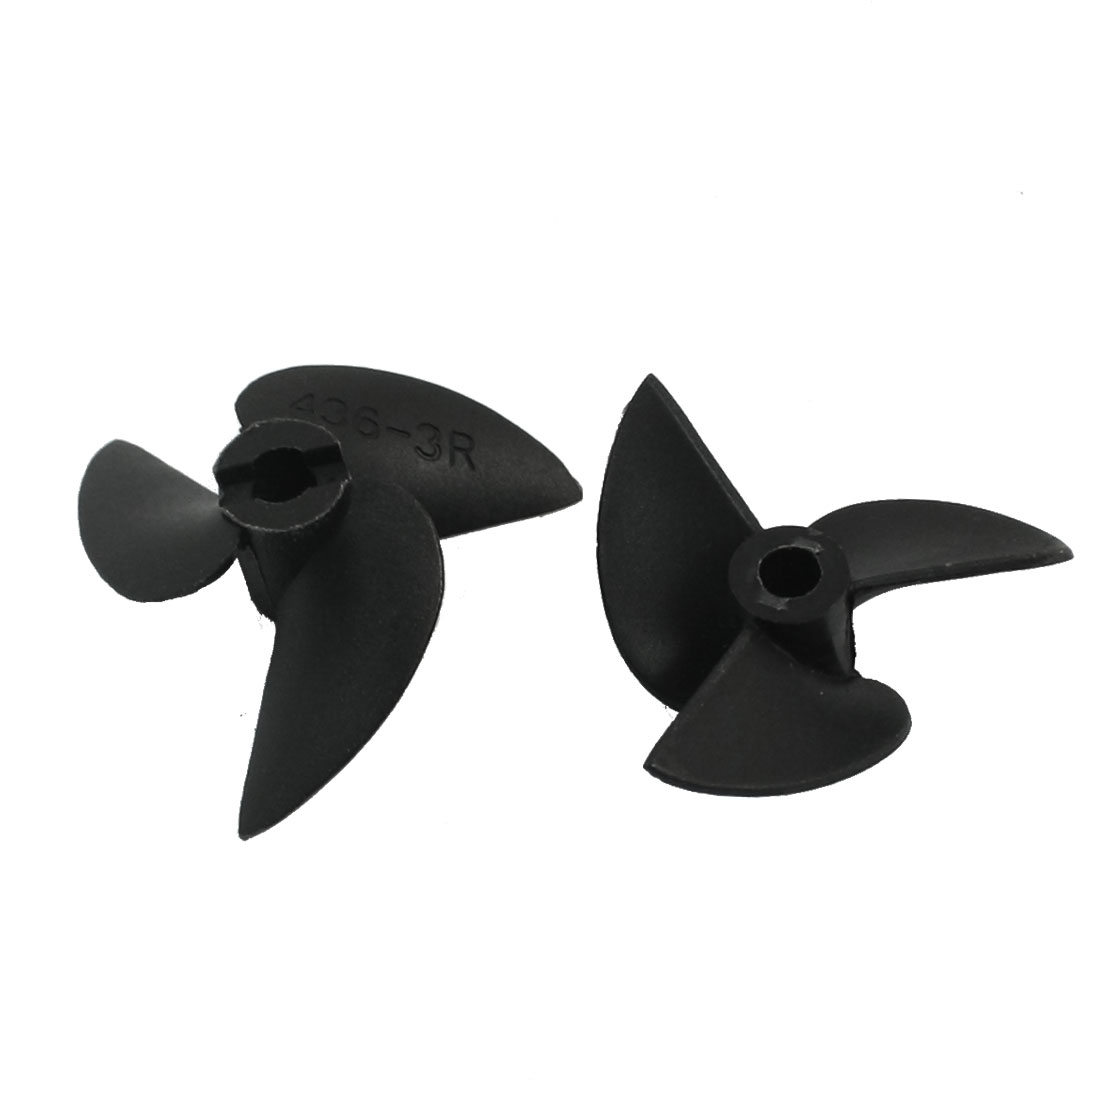 Pair Black Plastic 3-Vane CW/CCW Positive/Reverse Rotating Propeller Prop 36mm Dia P/D 1.4 3614 for 4mm Shaft RC Model Ship Boat